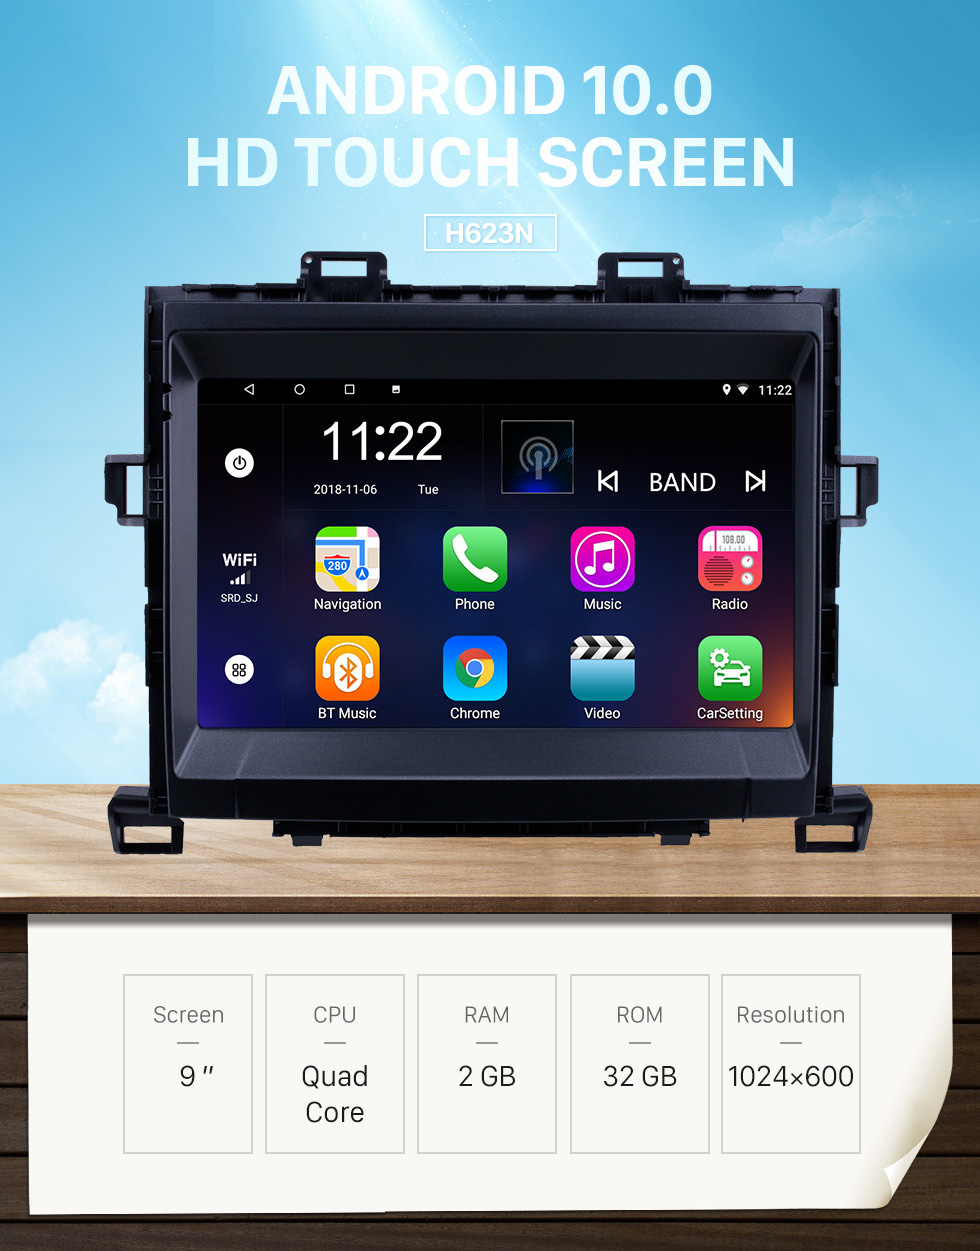 Seicane 8 Inch 2009-2014 Toyota ALPHARD/Vellfire ANH20 Android 10.0 Radio GPS Navigation system with 3G WiFi Capacitive Touch Screen TPMS DVR OBD II Rear camera AUX Steering Wheel Control USB Bluetooth HD 1080P Video